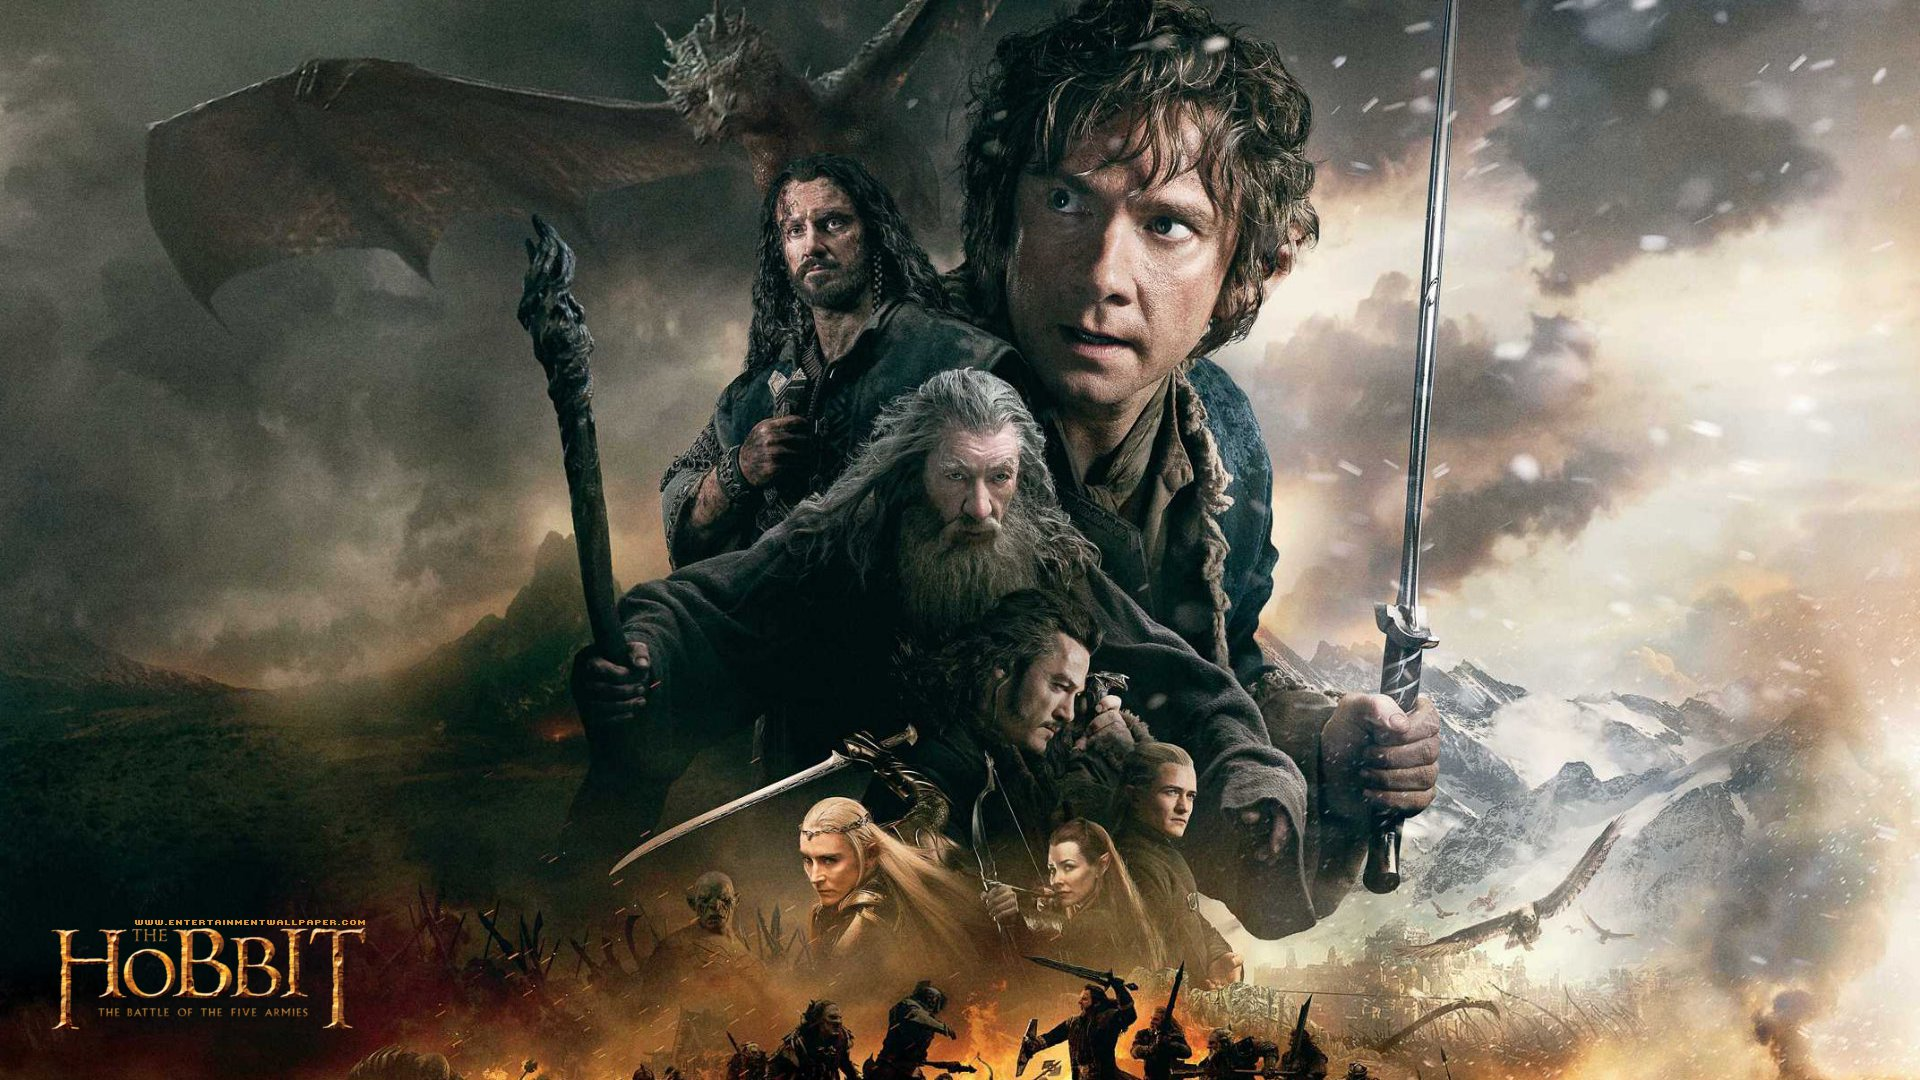 The Hobbit the Battle of the Five Armies wallpaper 6